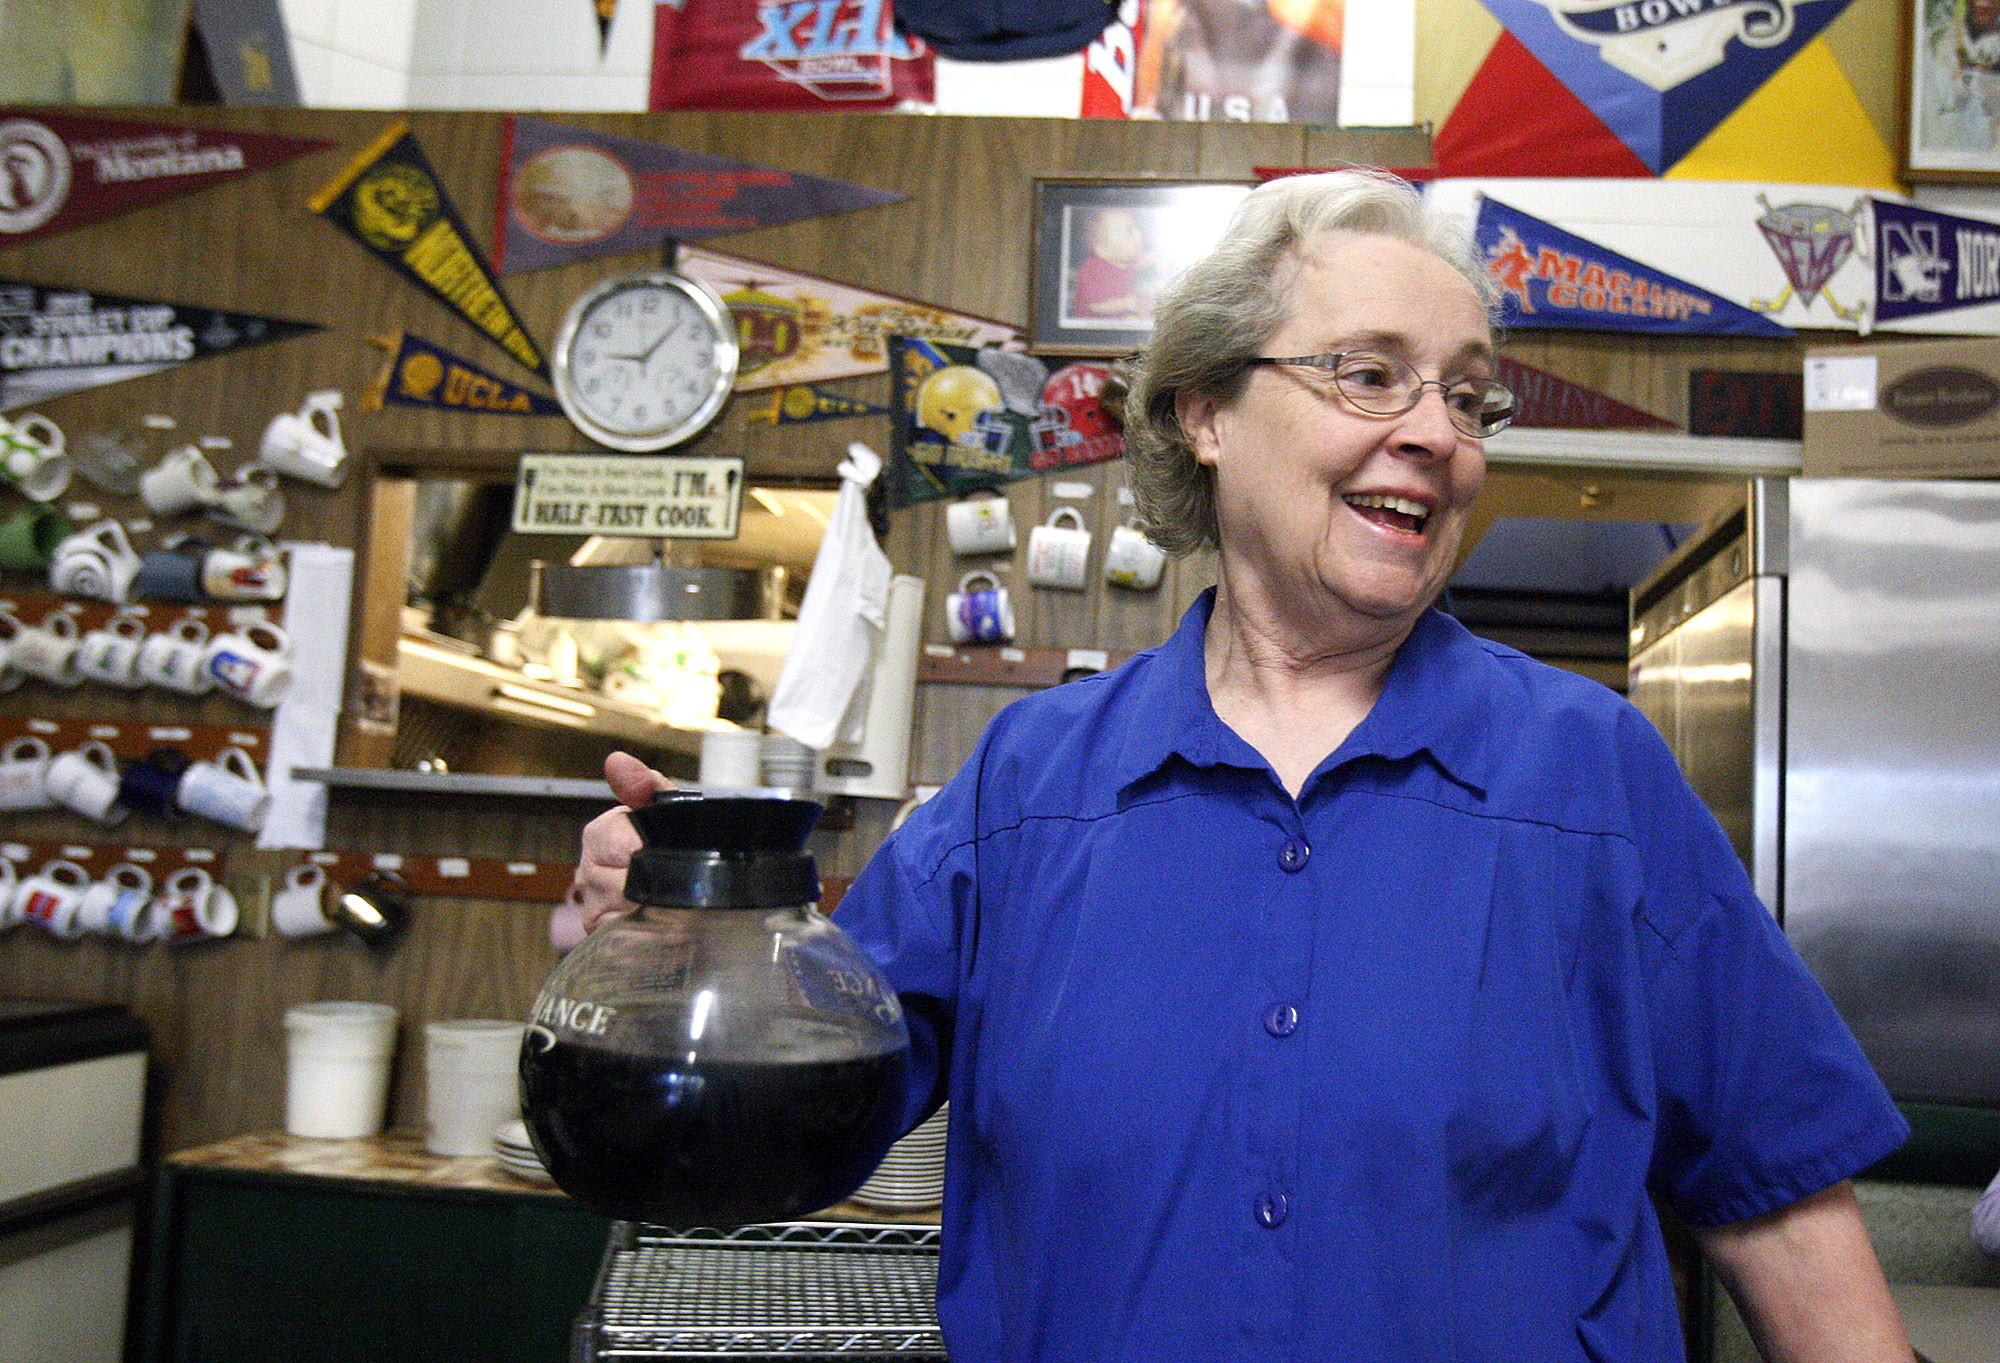 Wanda Bergstrom, with a pot of coffee that she says is an extension of her arm, at City Hall Coffee Shop in Montrose where Bergstrom has worked for more than four decades, pictured on Monday, January 6, 2014.